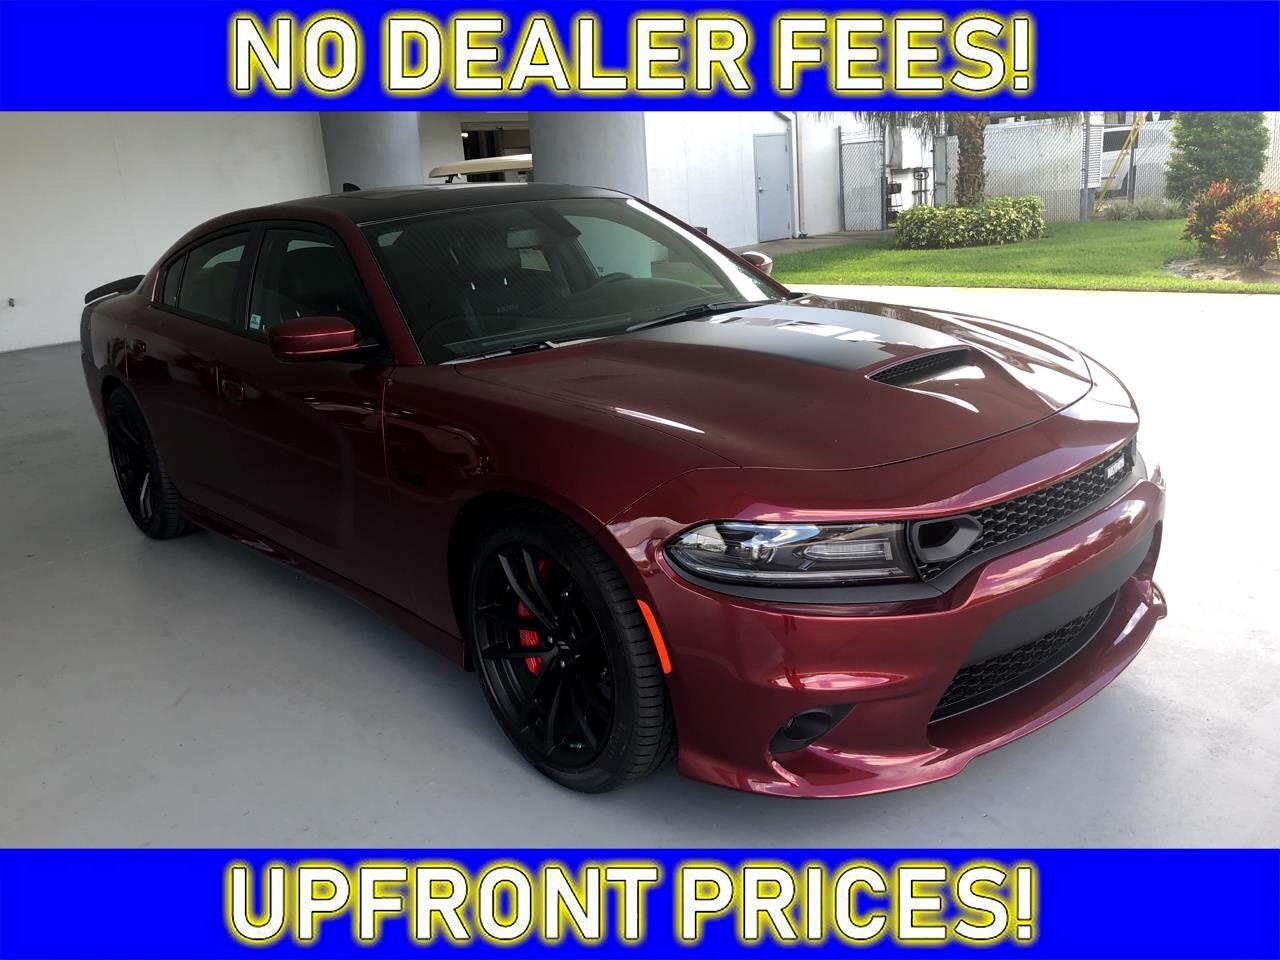 2019 Dodge Charger R/T 392